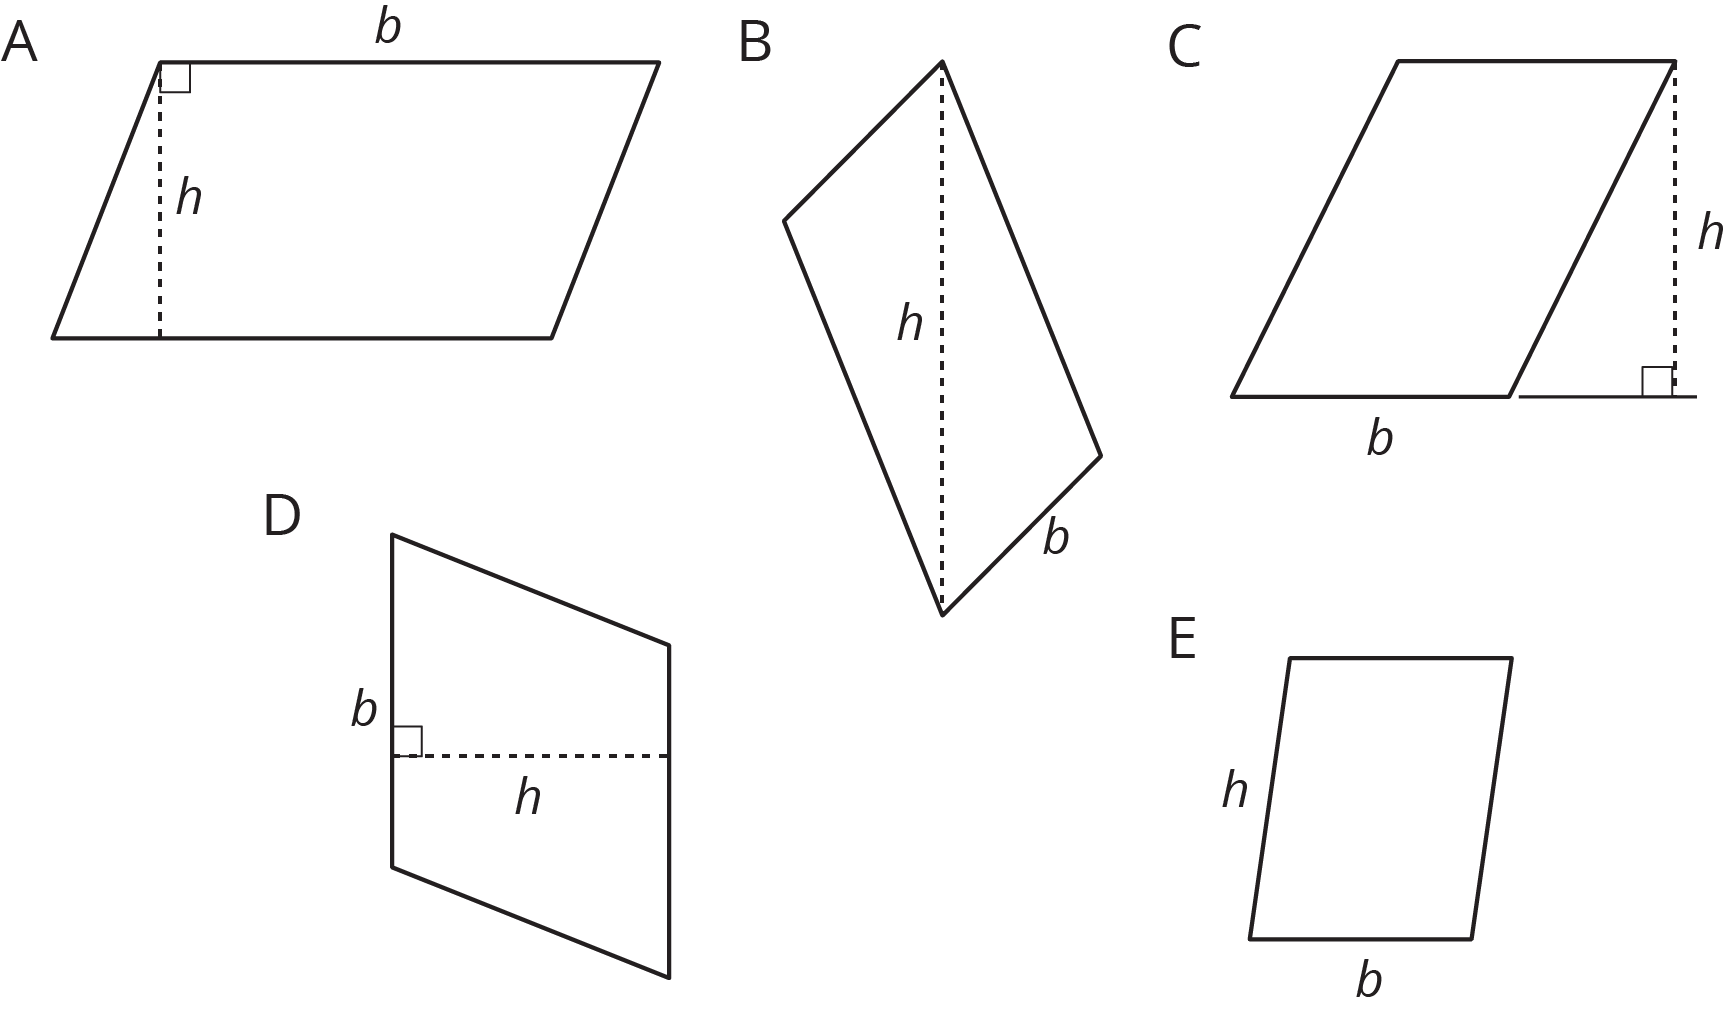 Five parallelograms labeled A--E.